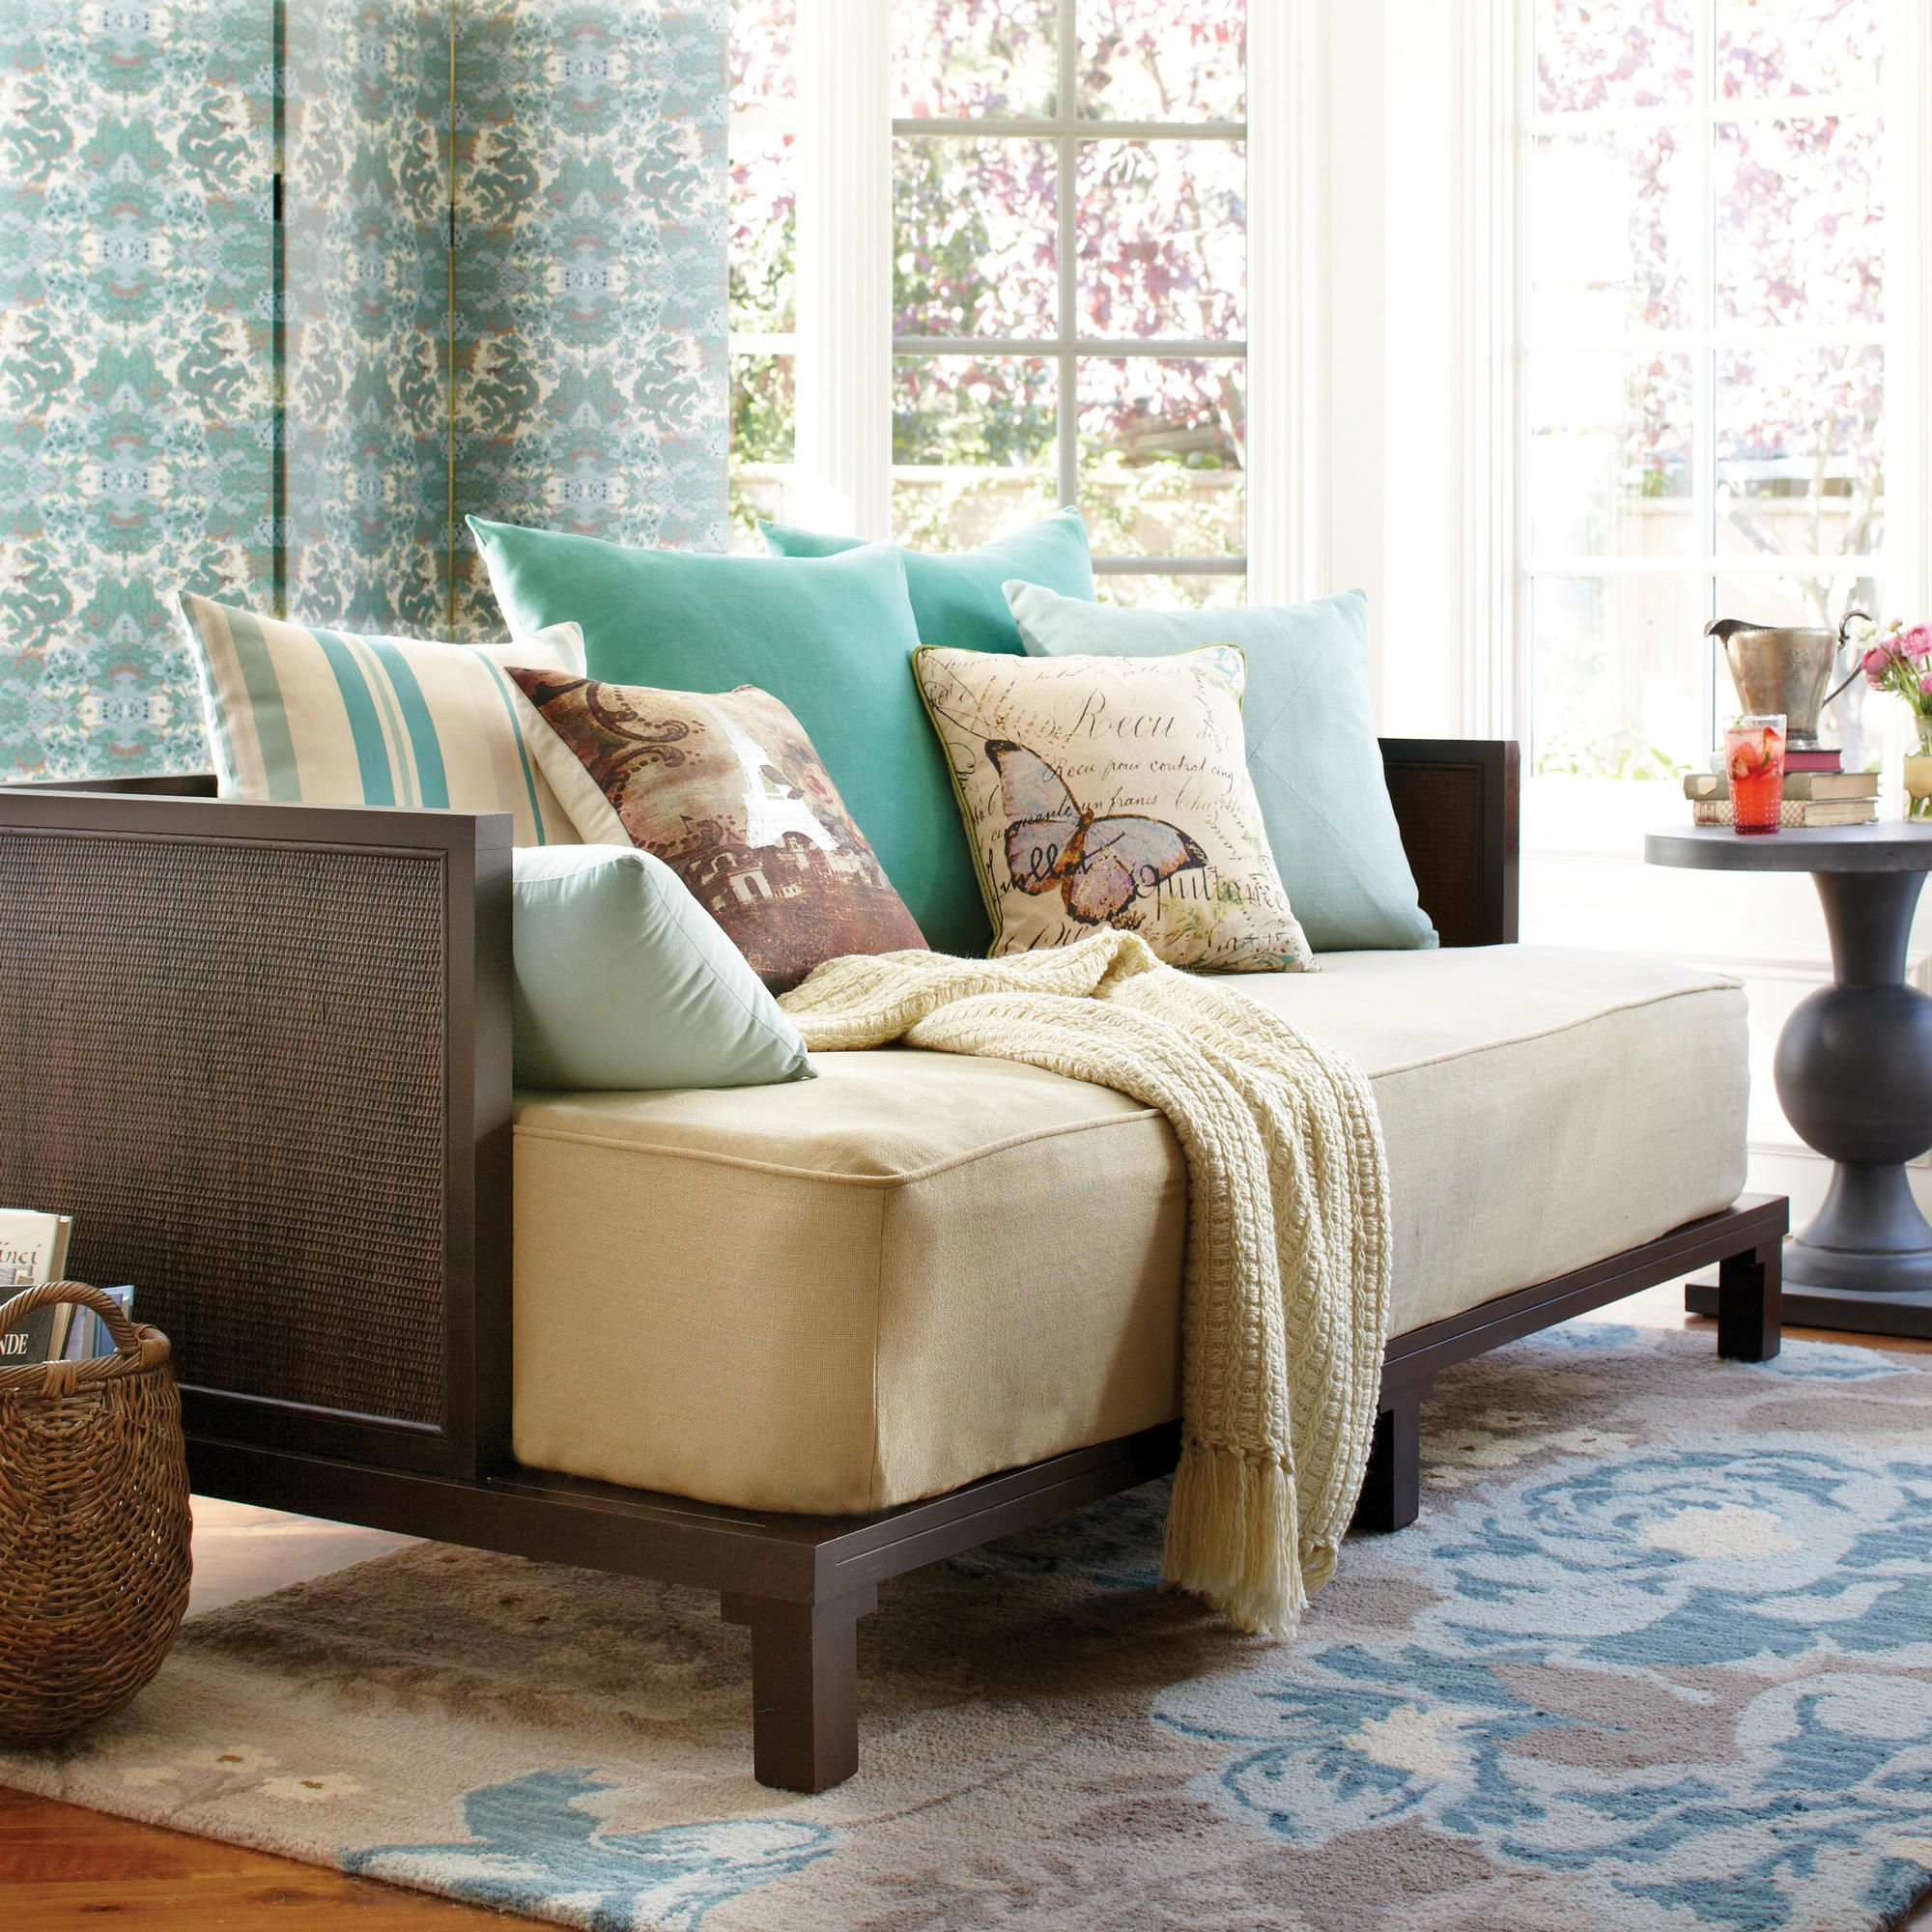 Queen Daybed On Pinterest Full Size Daybed Animal Print Bedding And Asian Inspired Bedroom